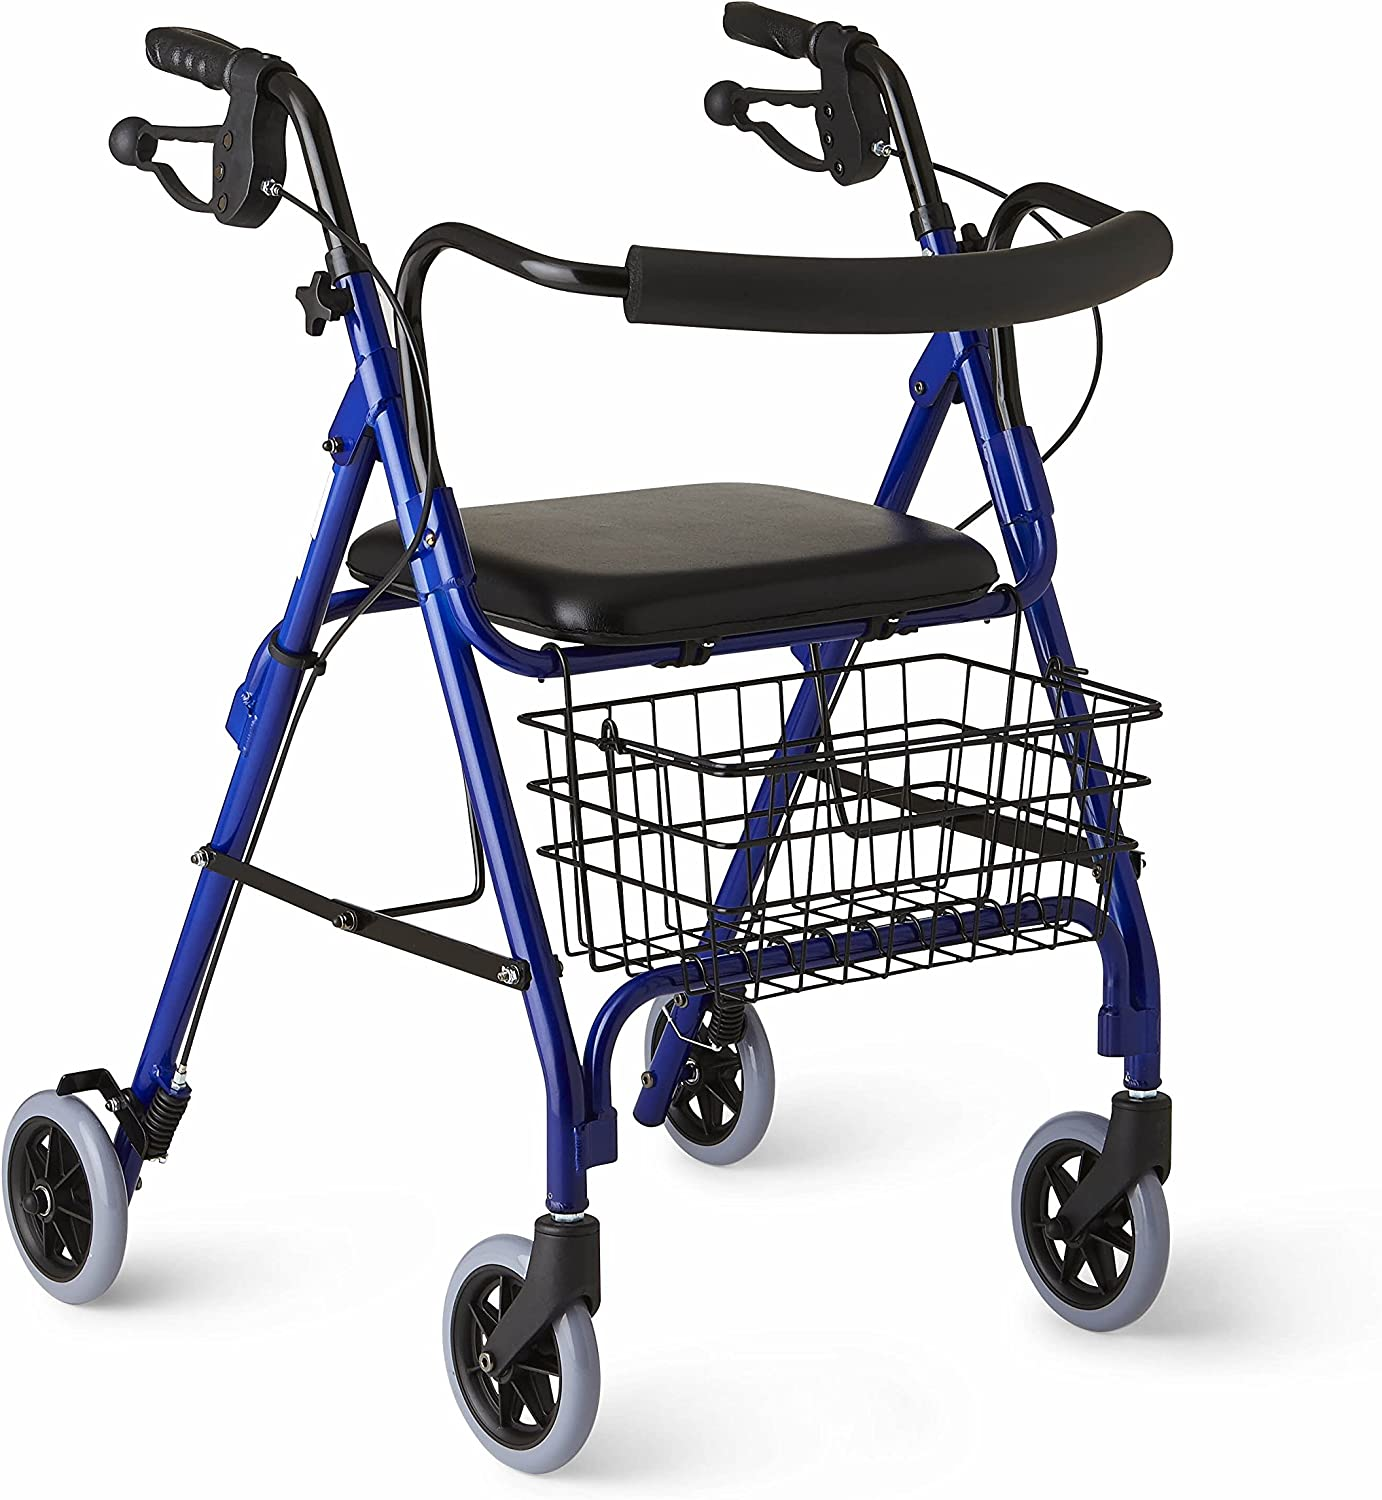 B0007VO08A Medline Deluxe Folding Rollator Walker, Blue 81HsAtia2BbL